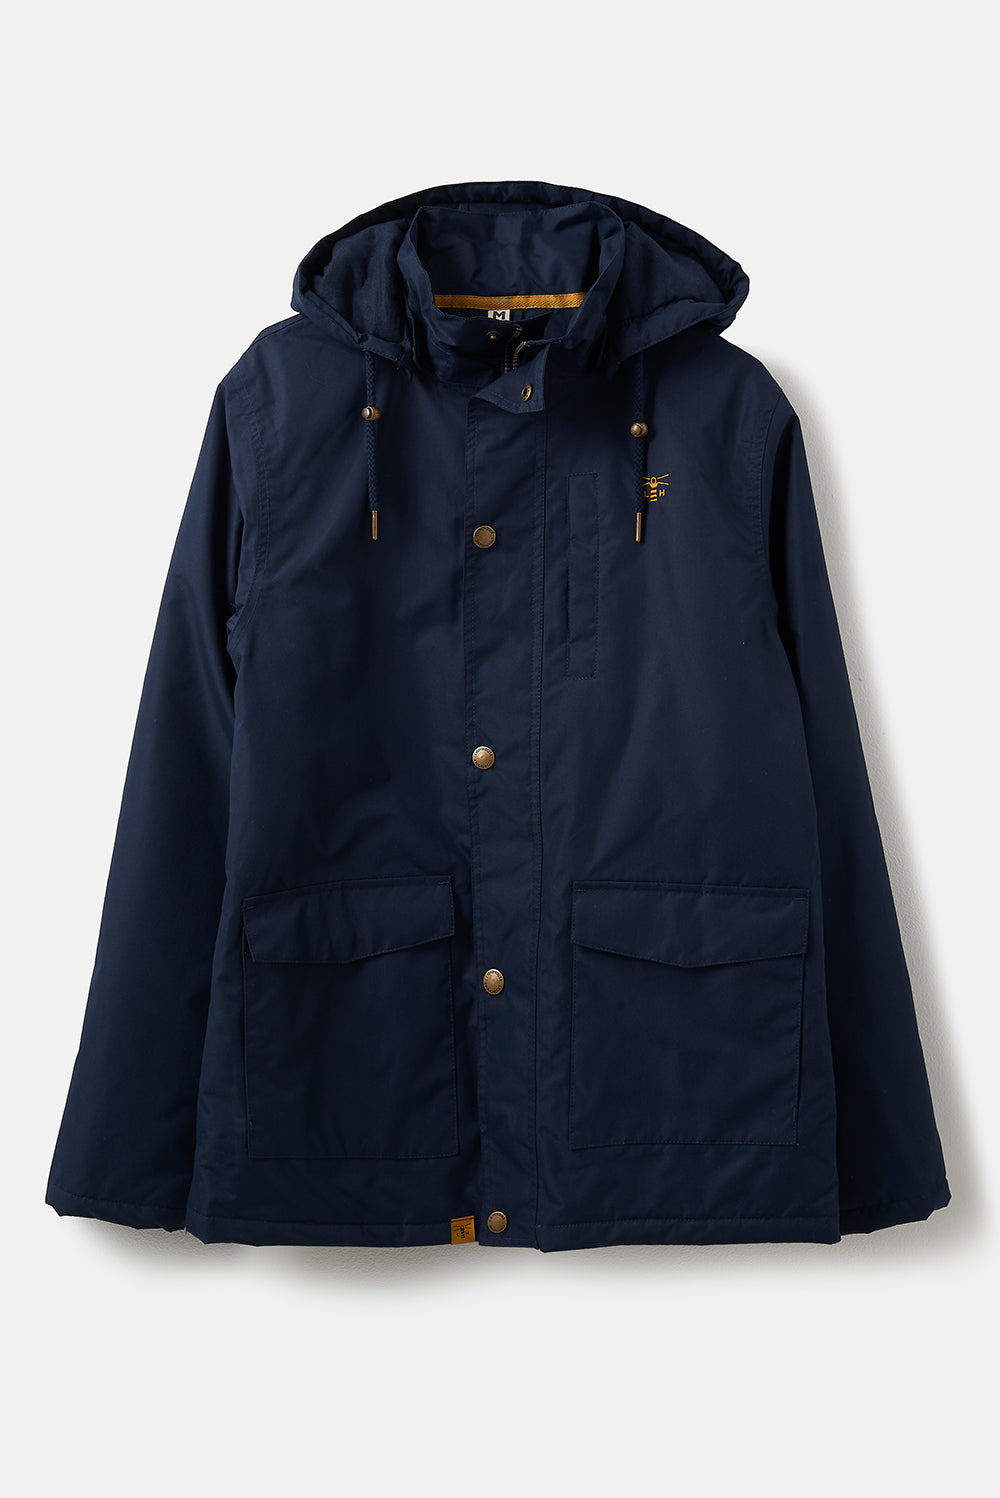 Lighthouse Logan Mens Warm Waterproof Coat - Navy